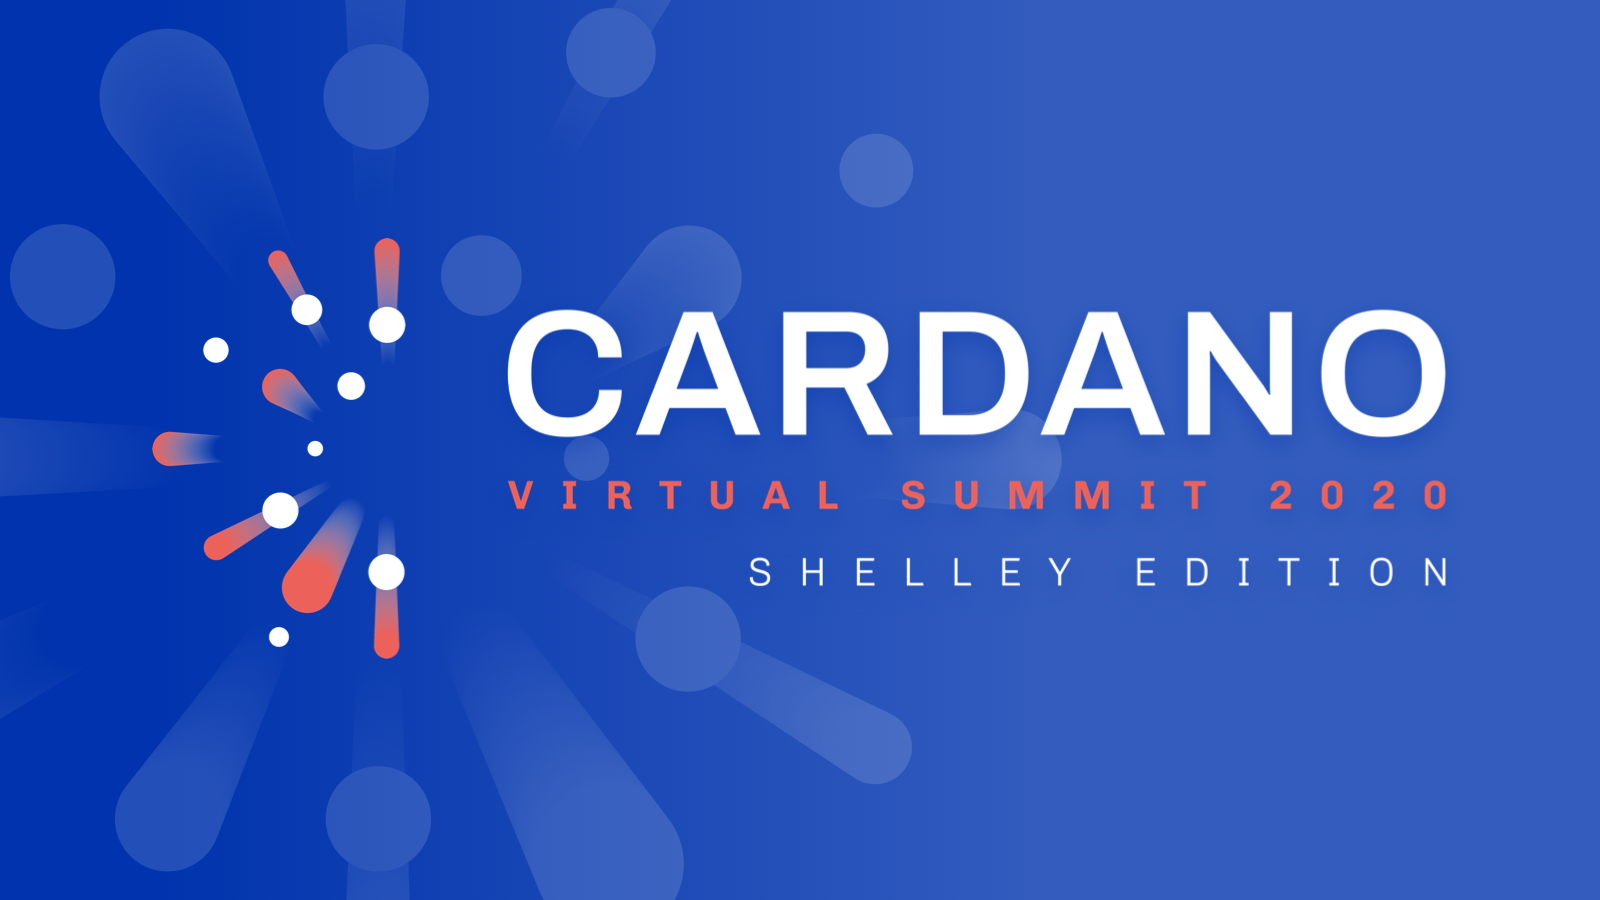 The logo for the Cardano virtual summit - Shelley edition 2020, with a blue background